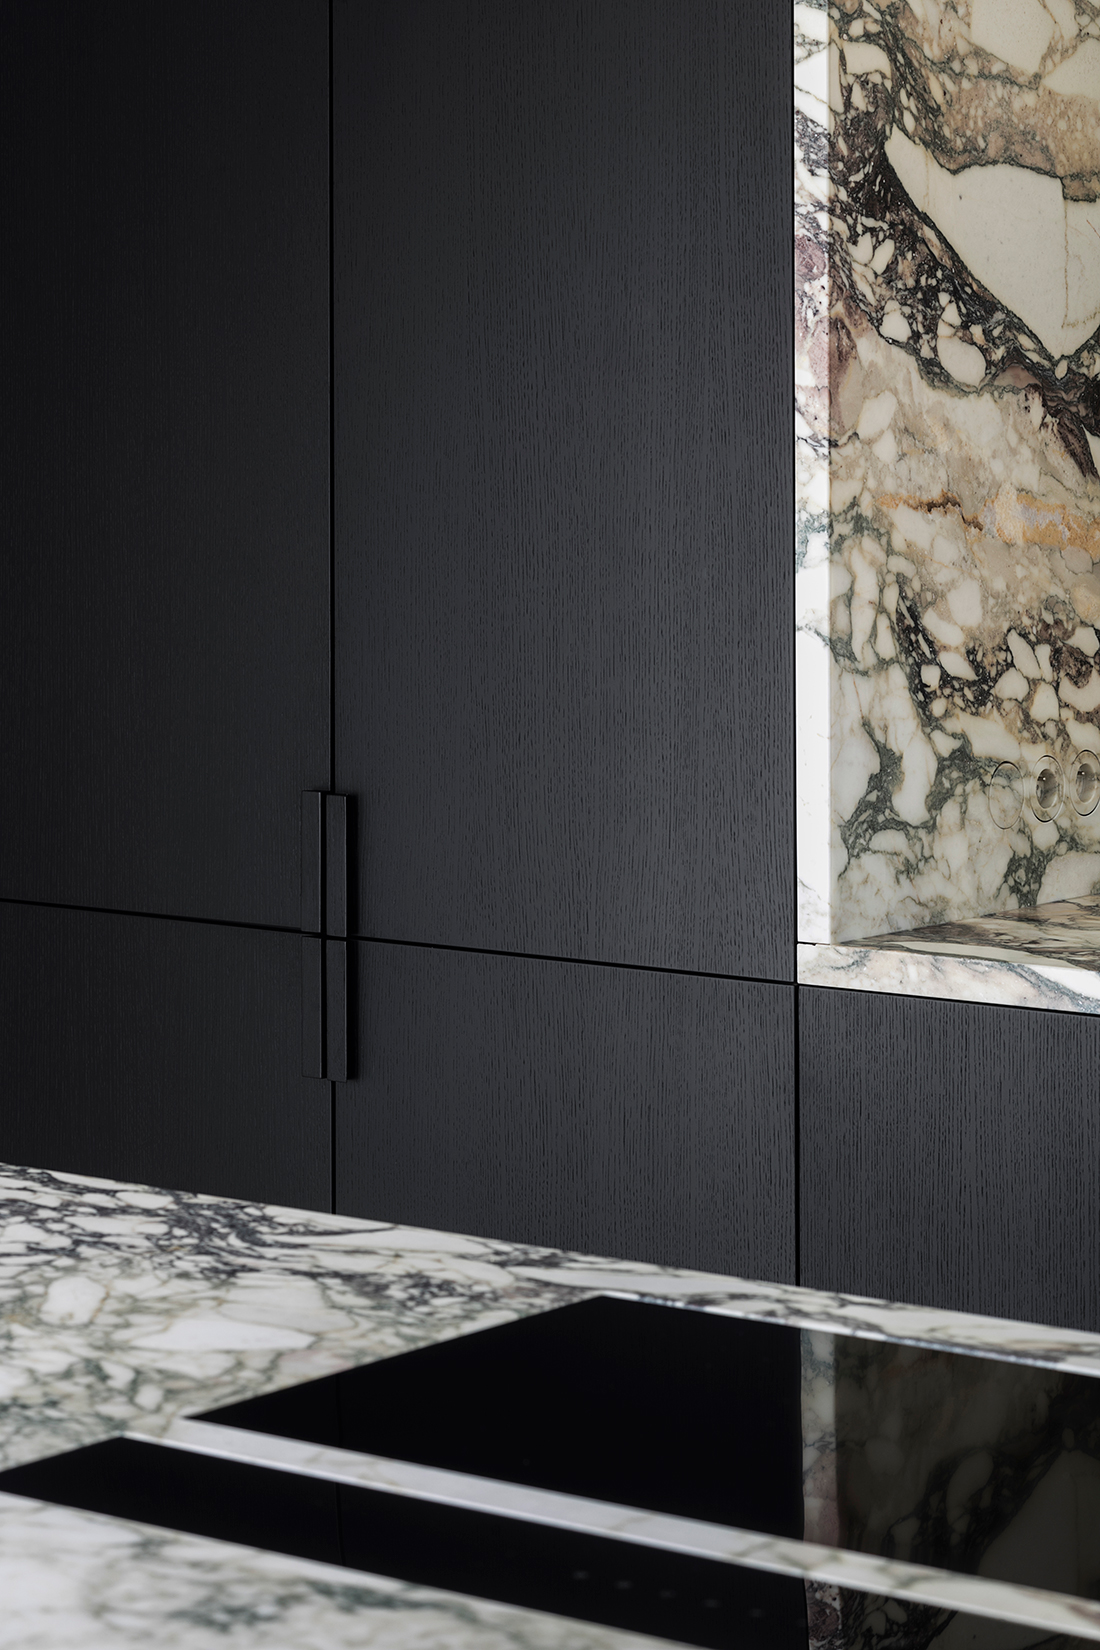 Black Custom Cabinetry by Dieter Vander Velpen | DPAGES